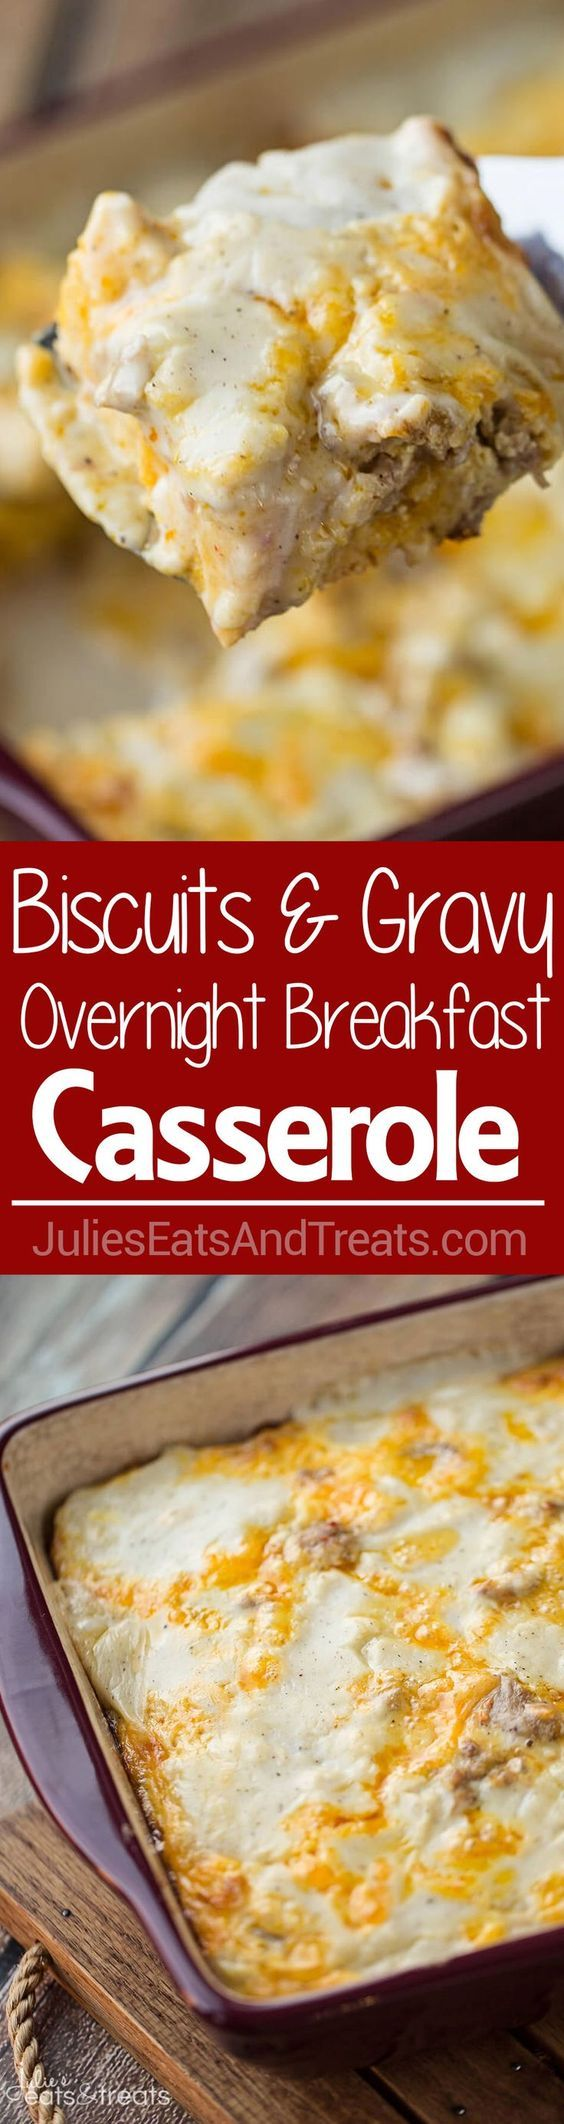 Biscuits and Gravy Overnight Breakfast Casserole ~ Comforting Hearty Breakfast Casserole That is Prepared the Night Before and Baked in the Morning! Biscuits Loaded with Gravy Sausage Eggs and Cheese!